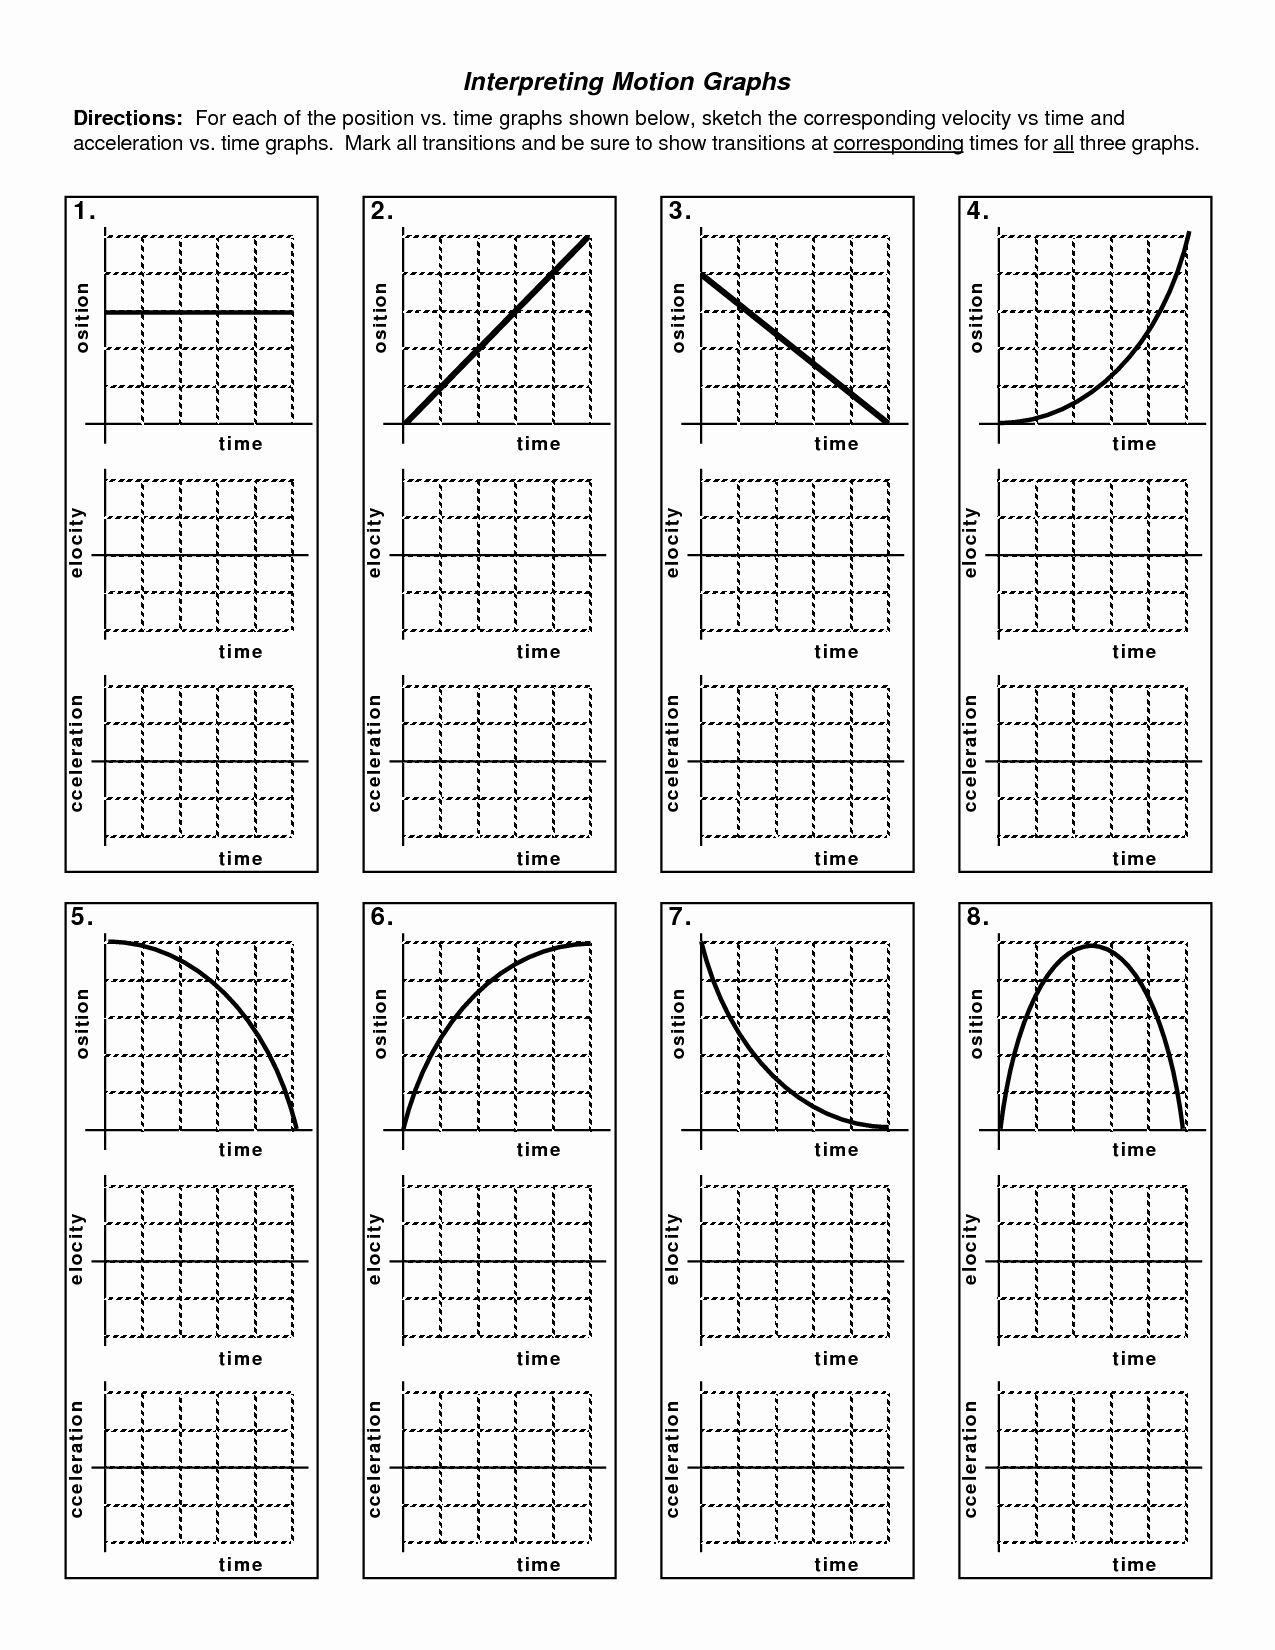 Motion Graphs Worksheet Answers Luxury Kinematics Motion